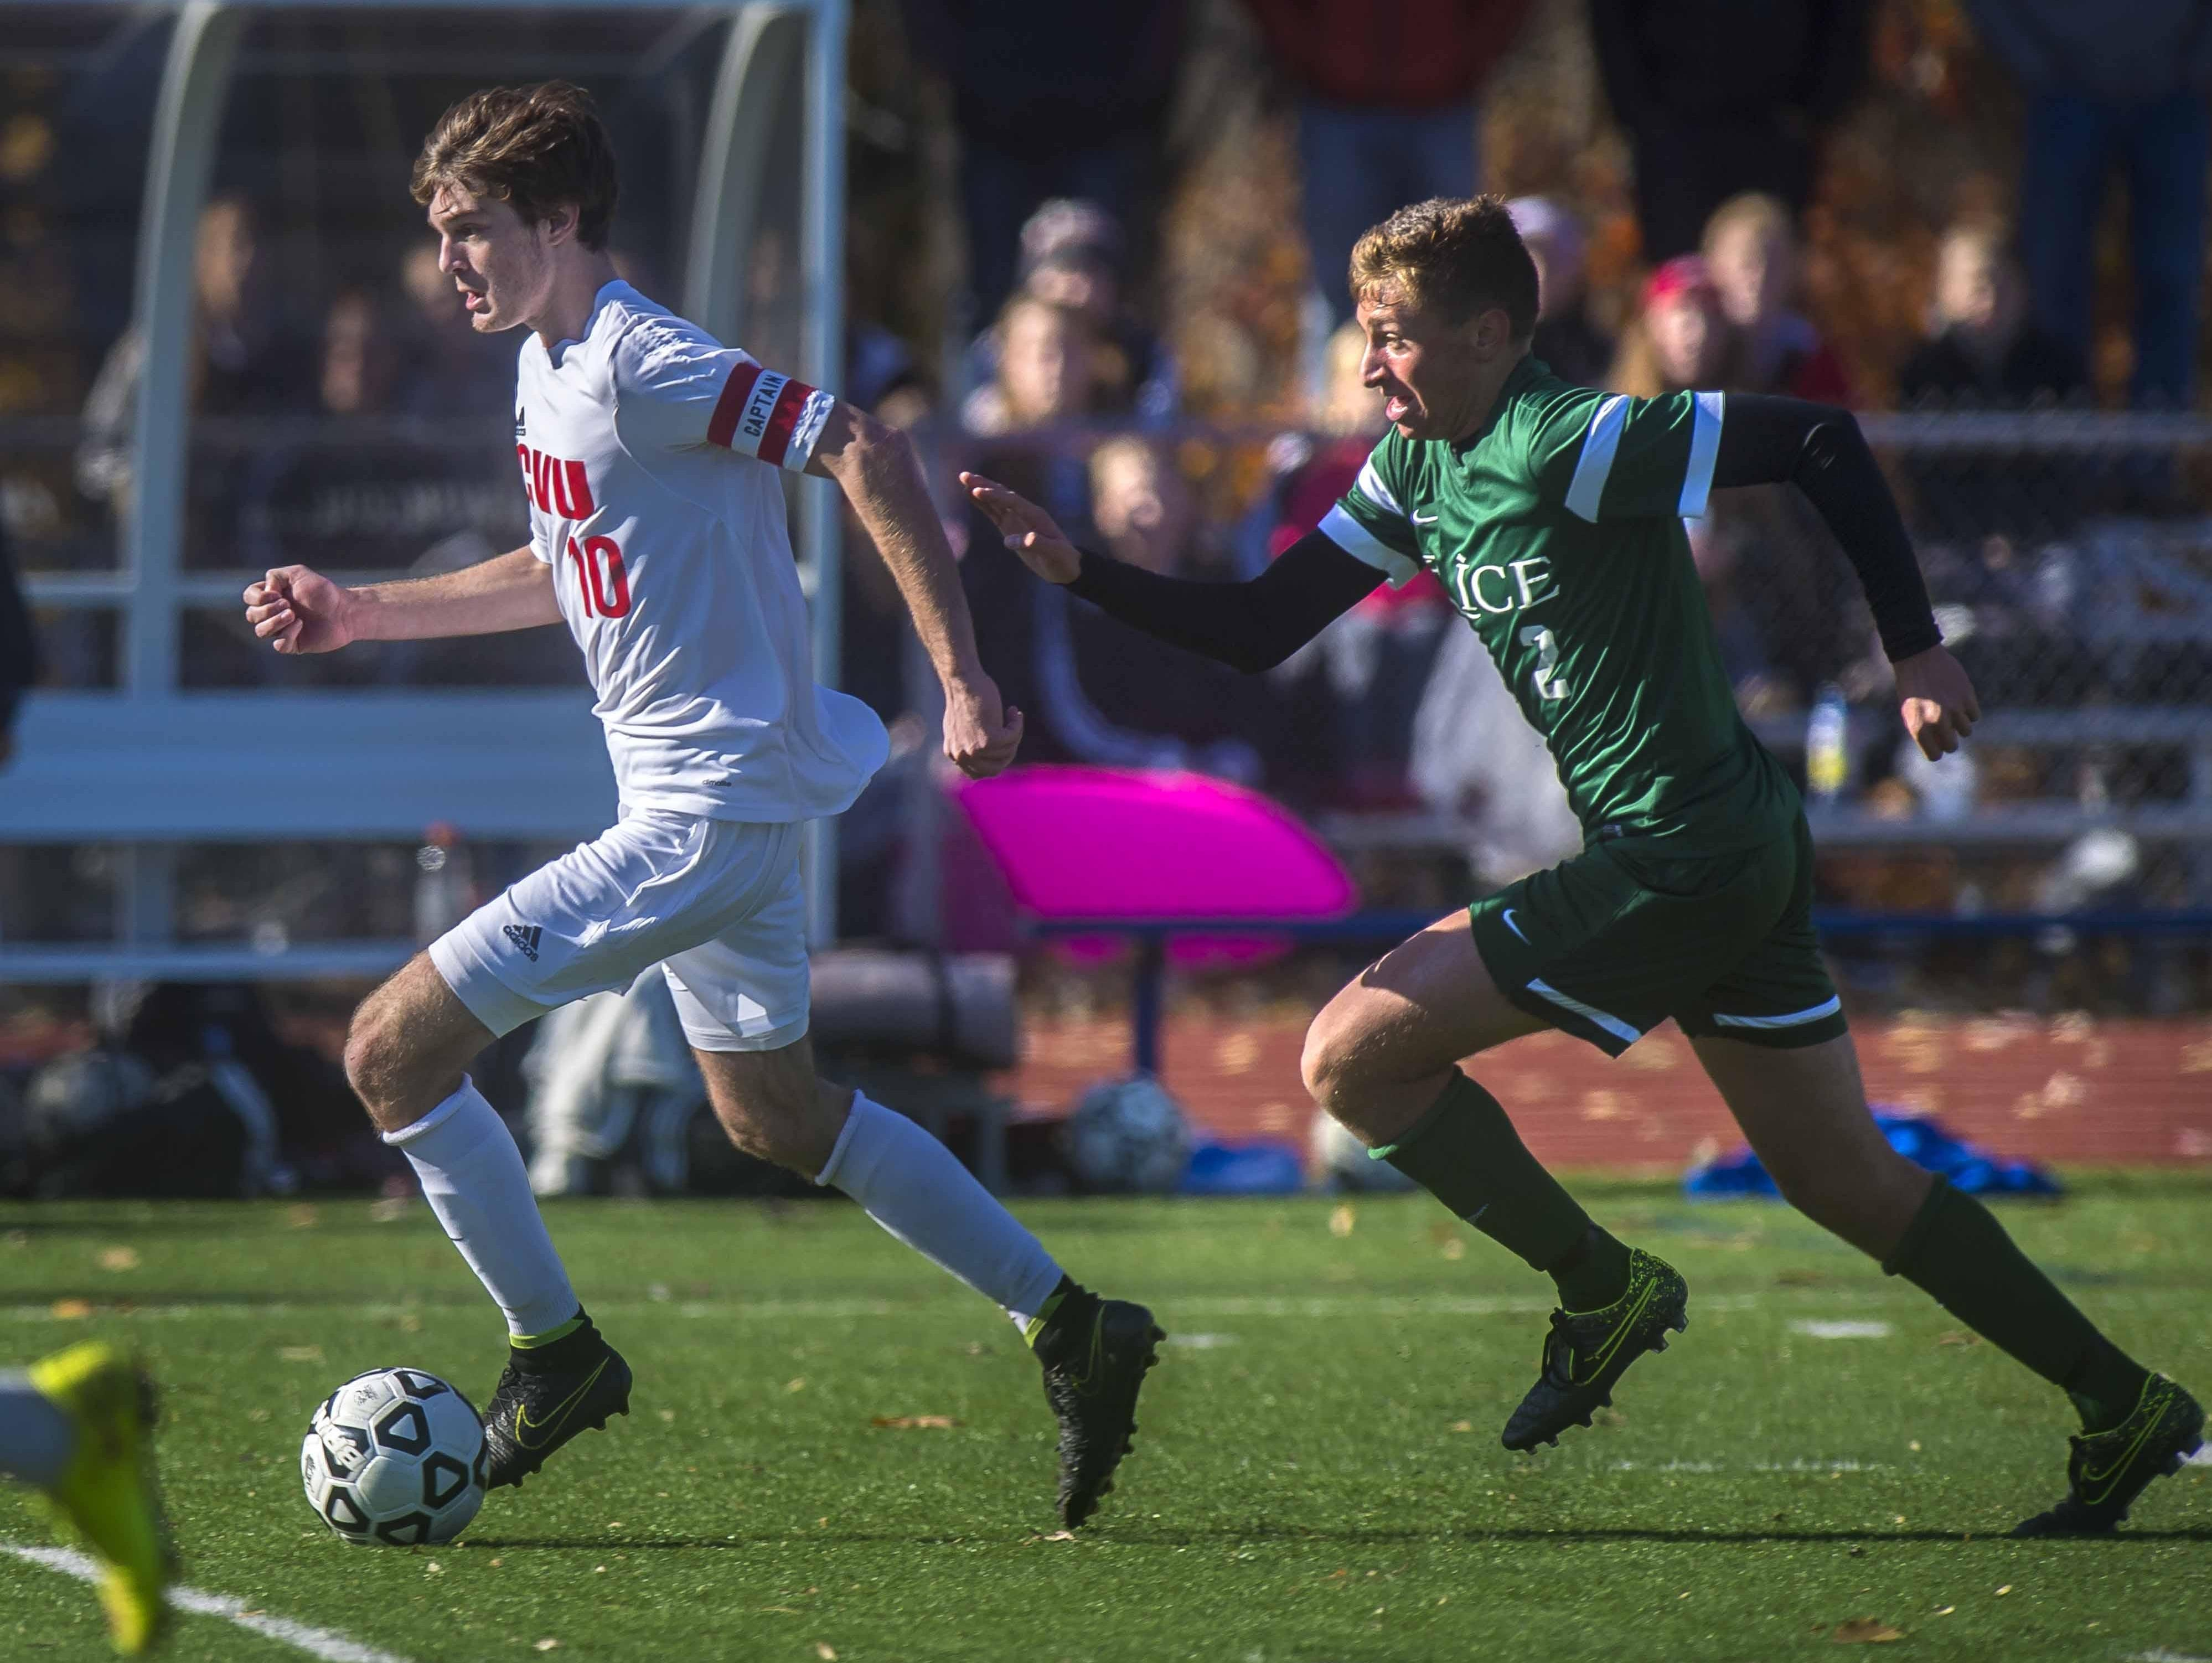 CVU's Cooper O'Connell, left, is chased by Rice Memorial's Brent McKeown in the Division I boys soccer championship in Burlington on Saturday, October 31, 2015.